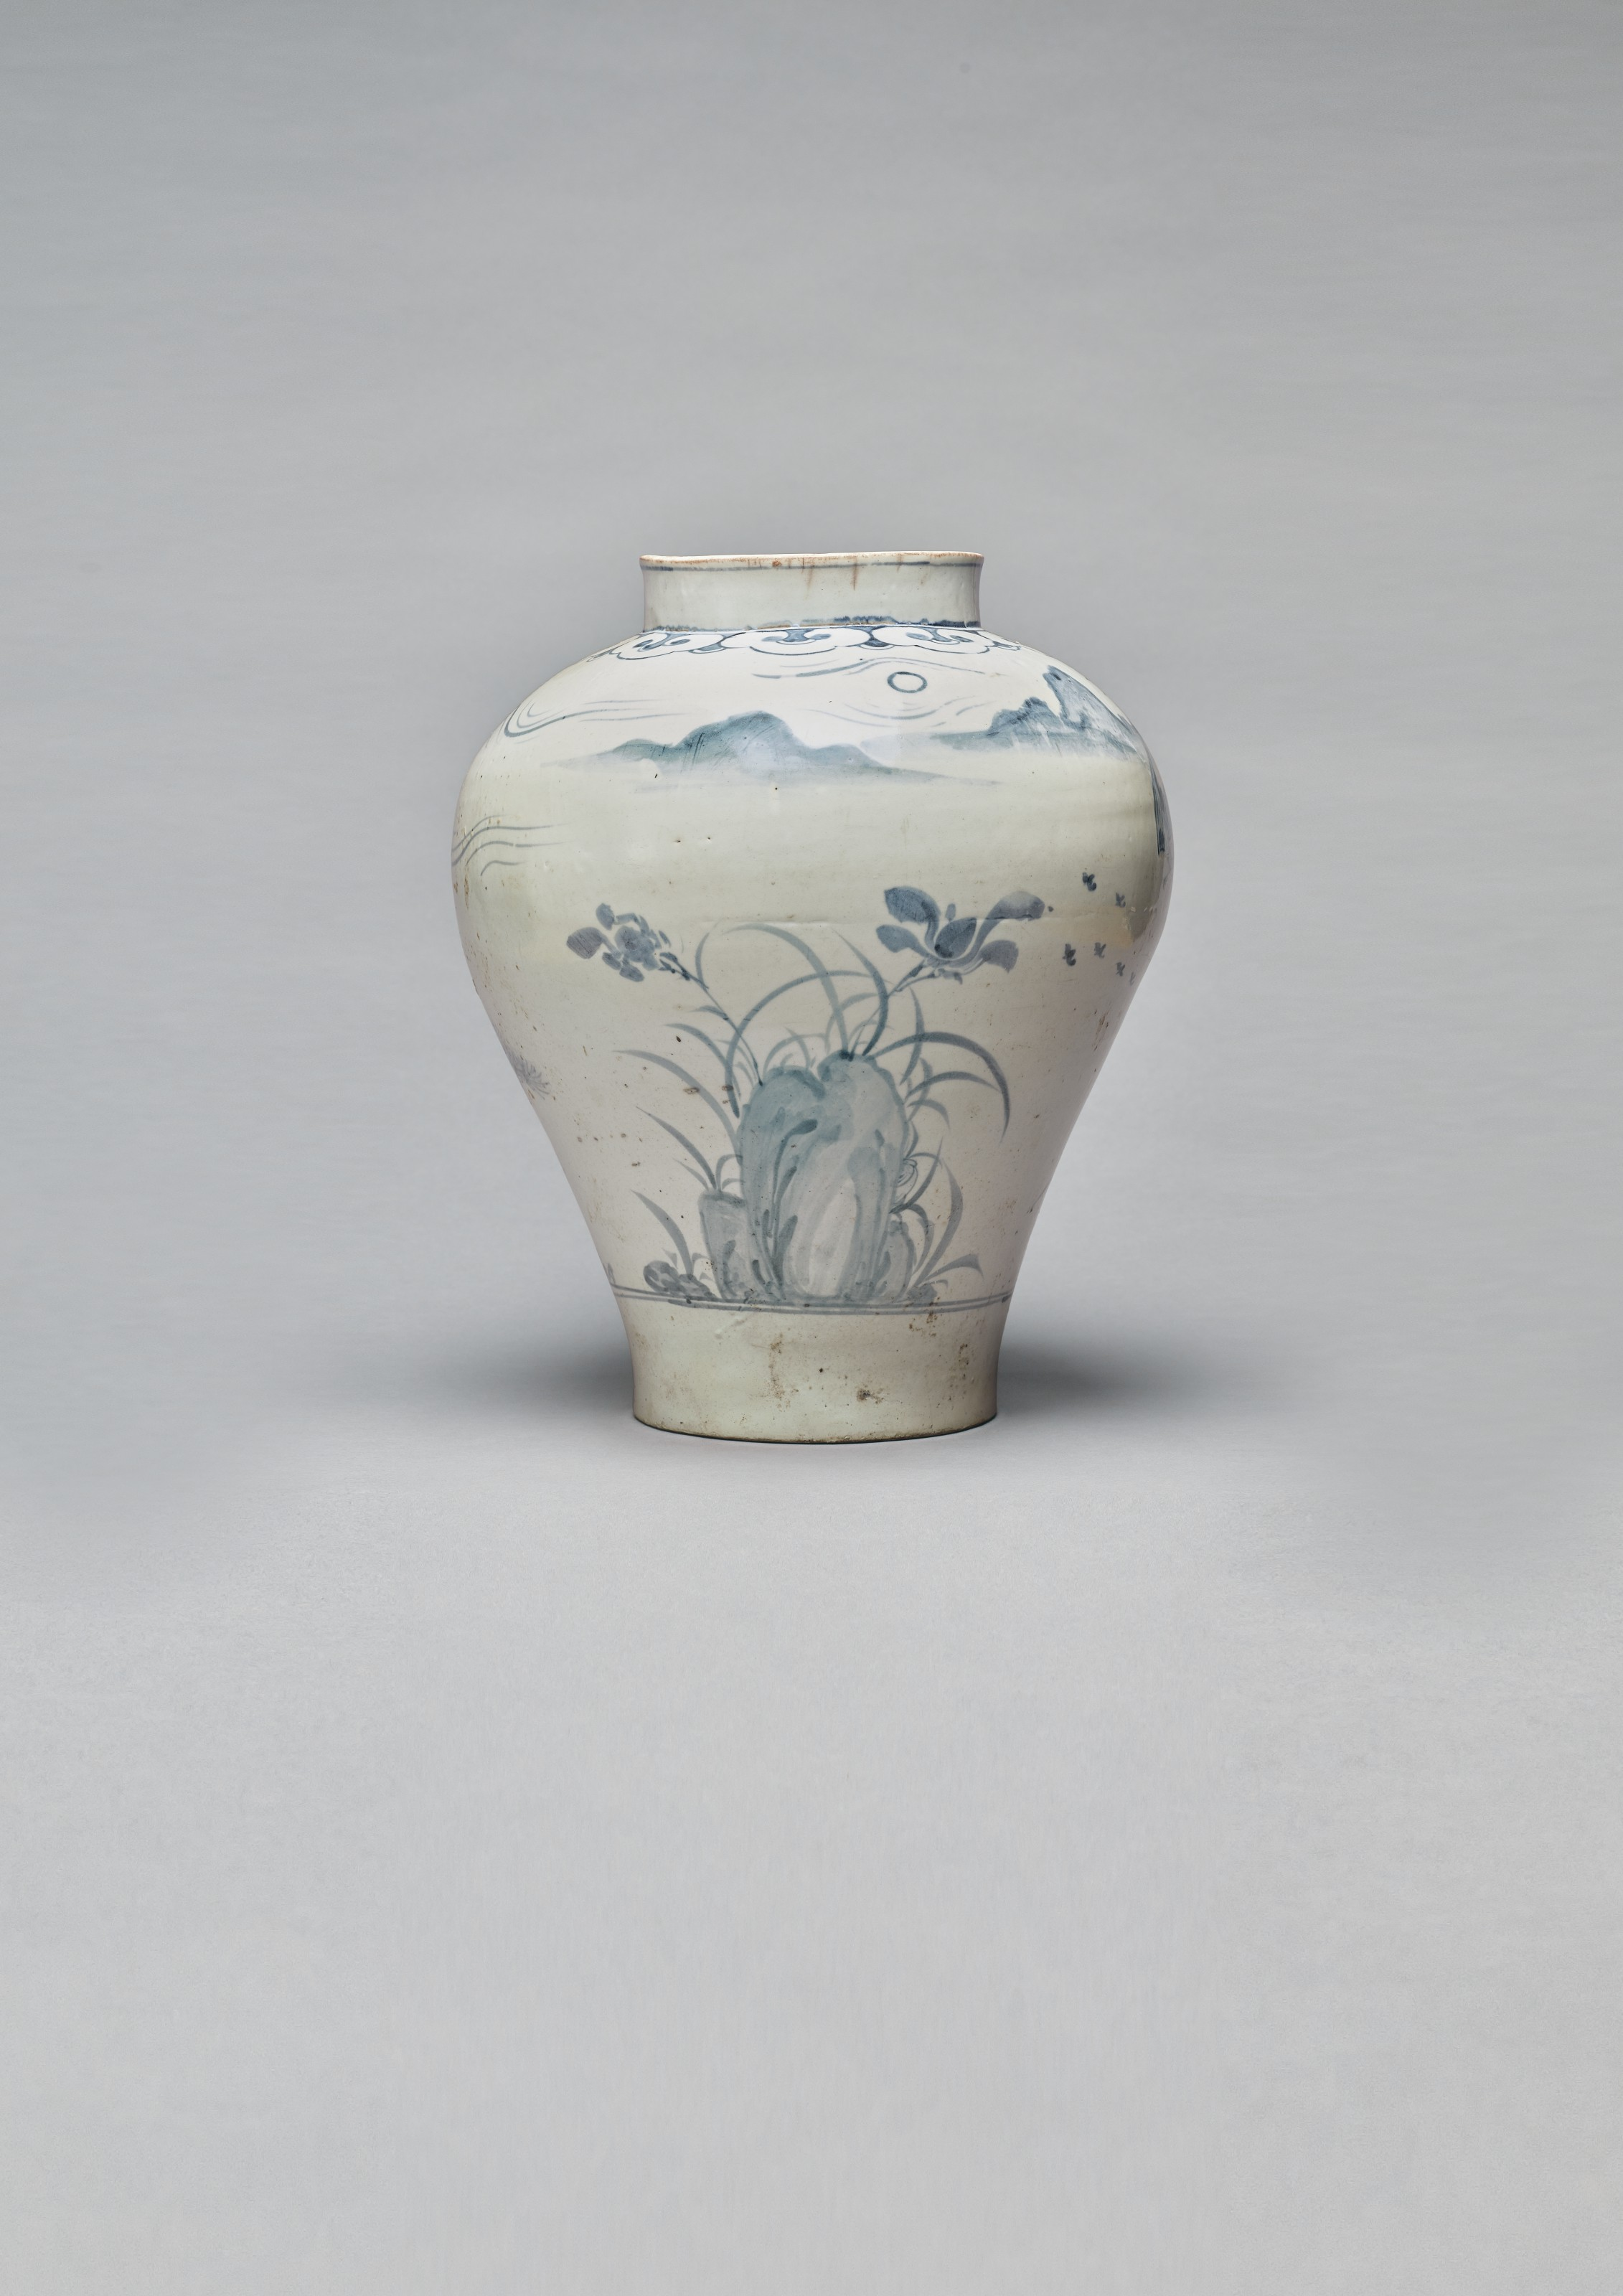 2020_NYR_19017_0251_001(a_blue_and_white_porcelain_jar_with_three_worthies_playing_weiqi_joseo035243)